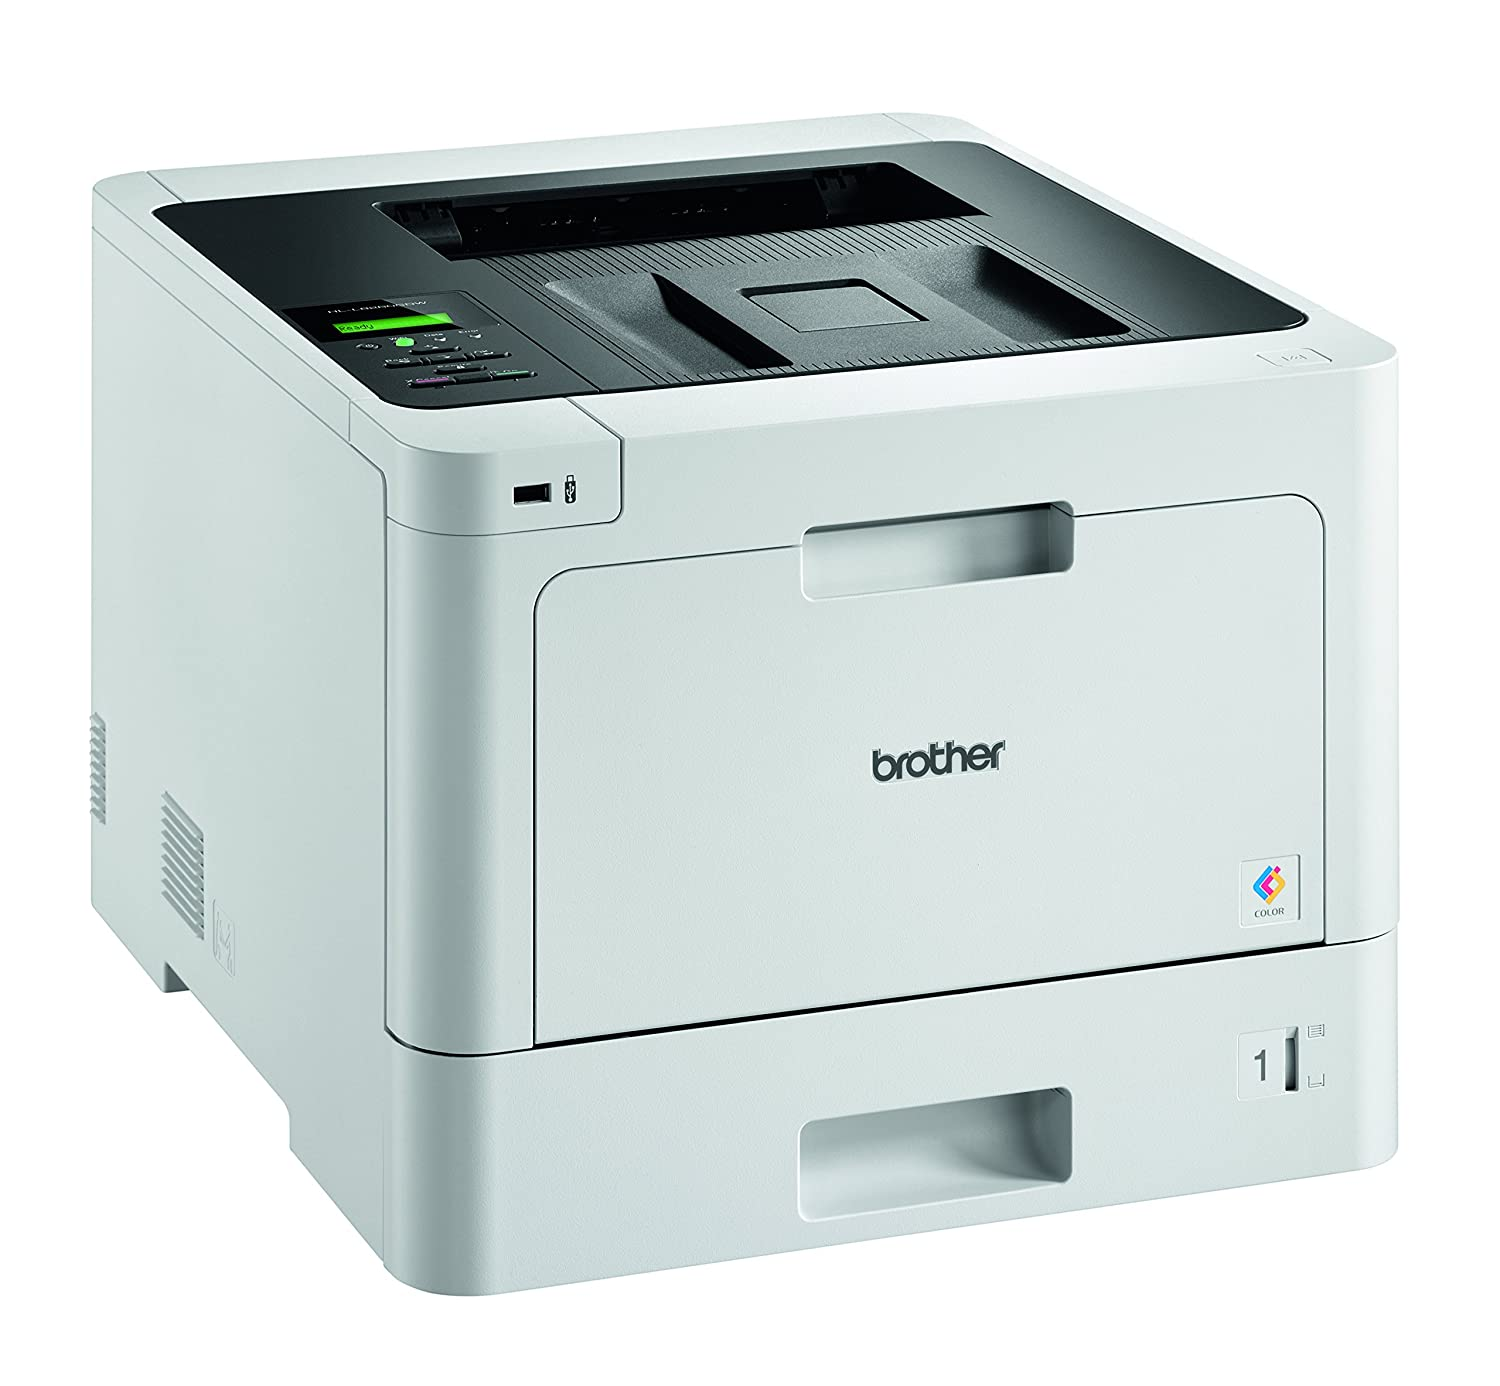 Color printing uw - Brother Hl L8260cdw Colour Laser Printer Amazon Co Uk Computers Accessories